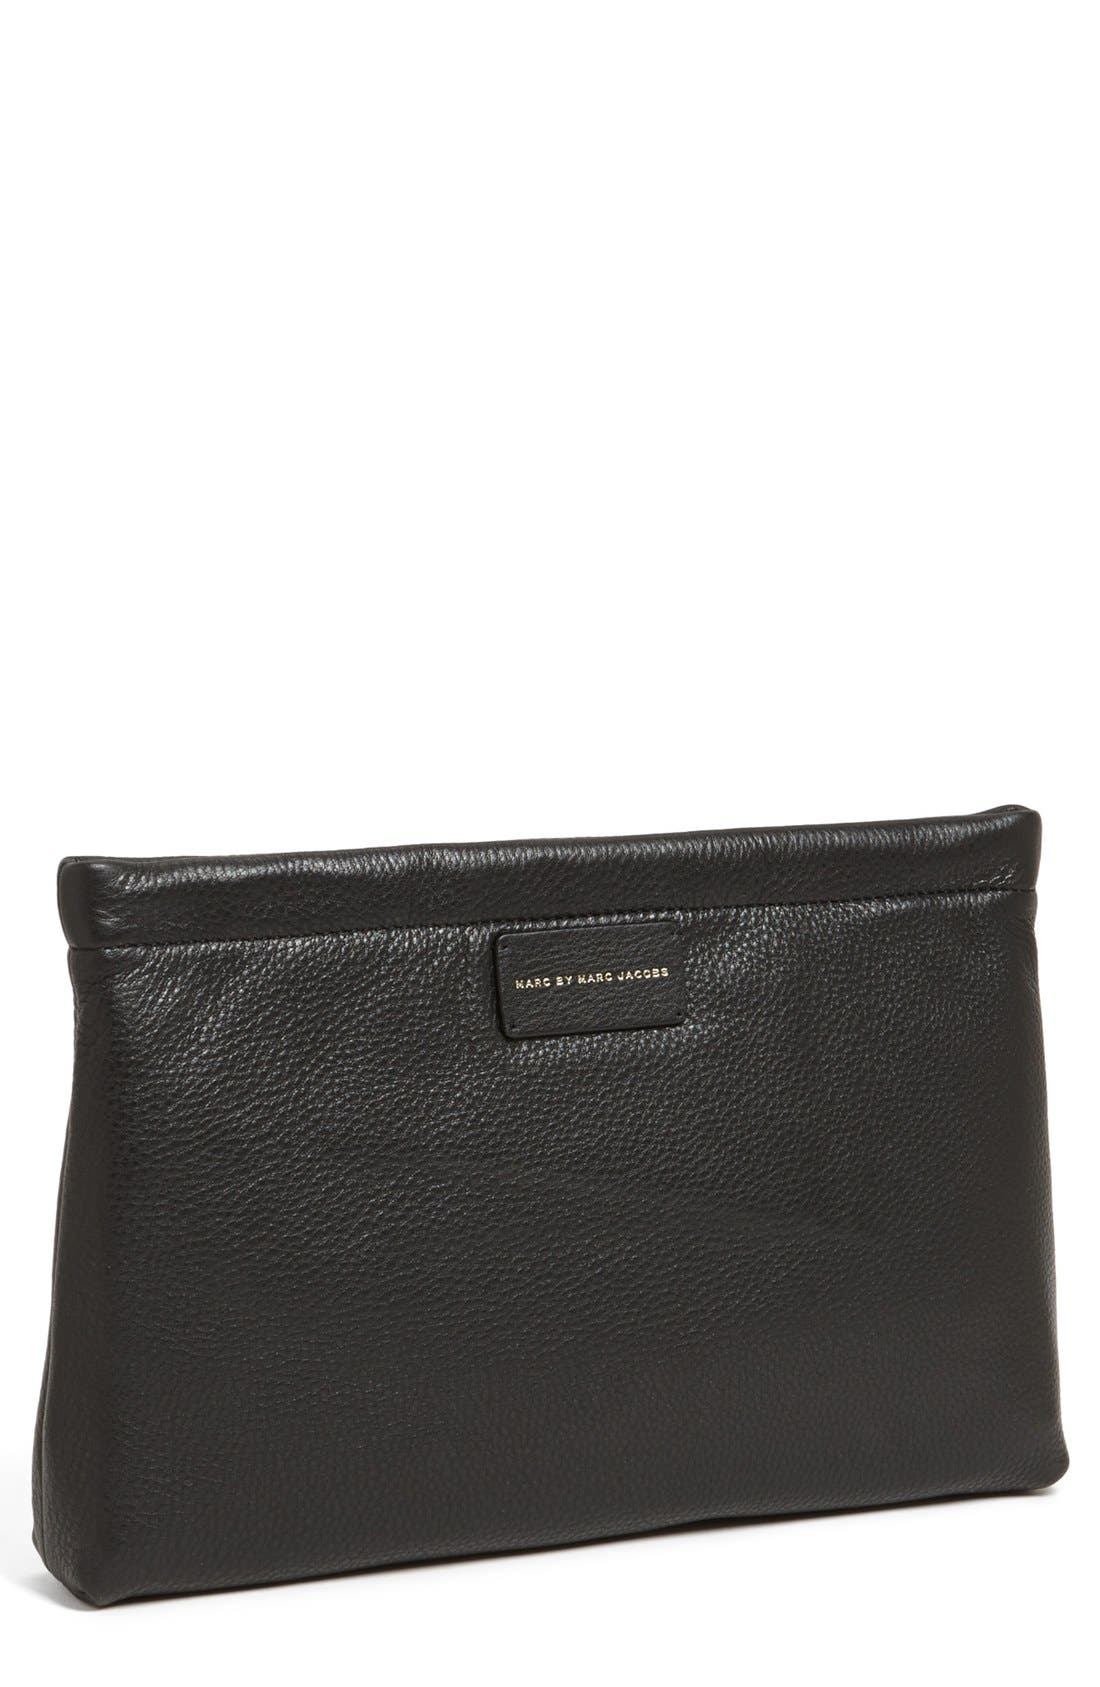 Alternate Image 1 Selected - MARC BY MARC JACOBS 'Can't Clutch This - Large' Clutch